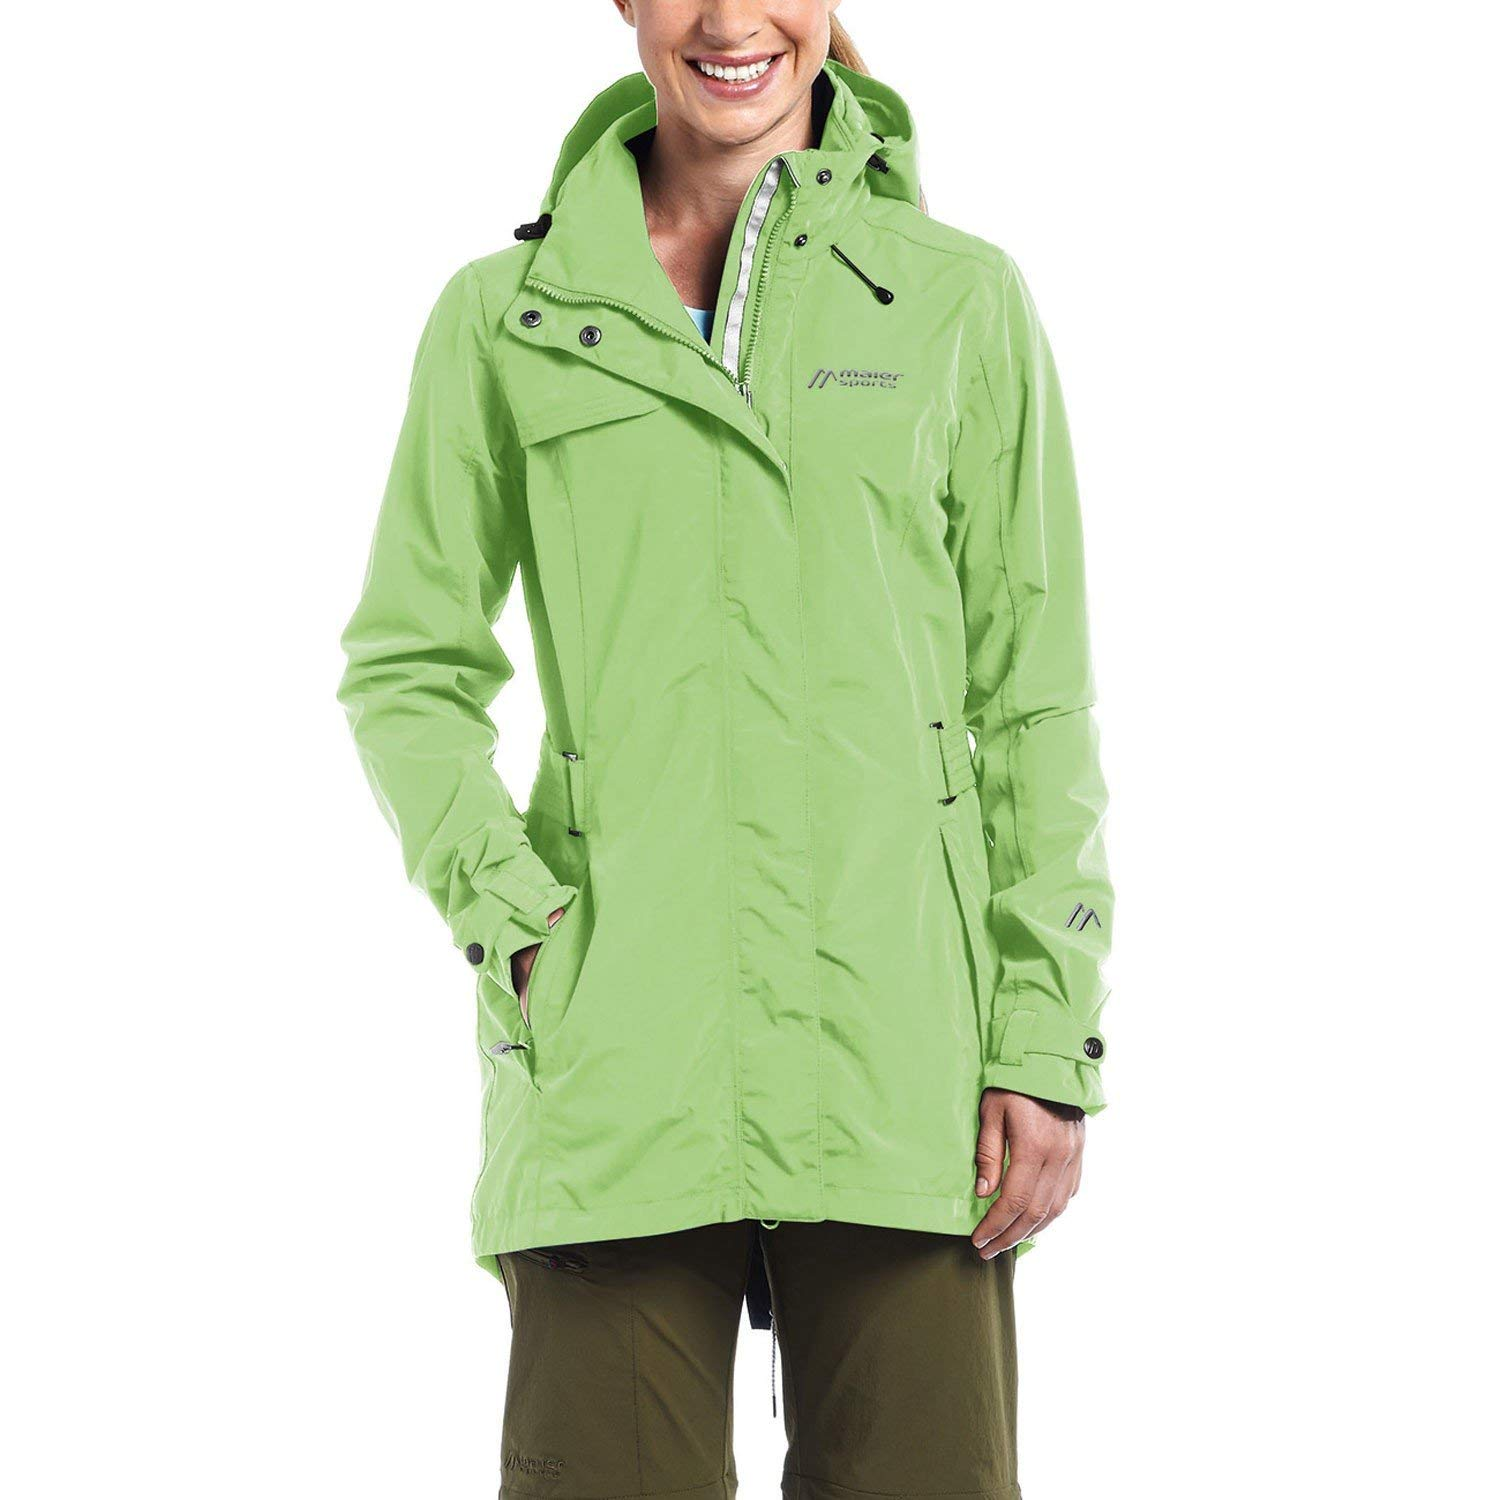 Maier Sports Damen Funktionsjacke Alva – summergreen - 46